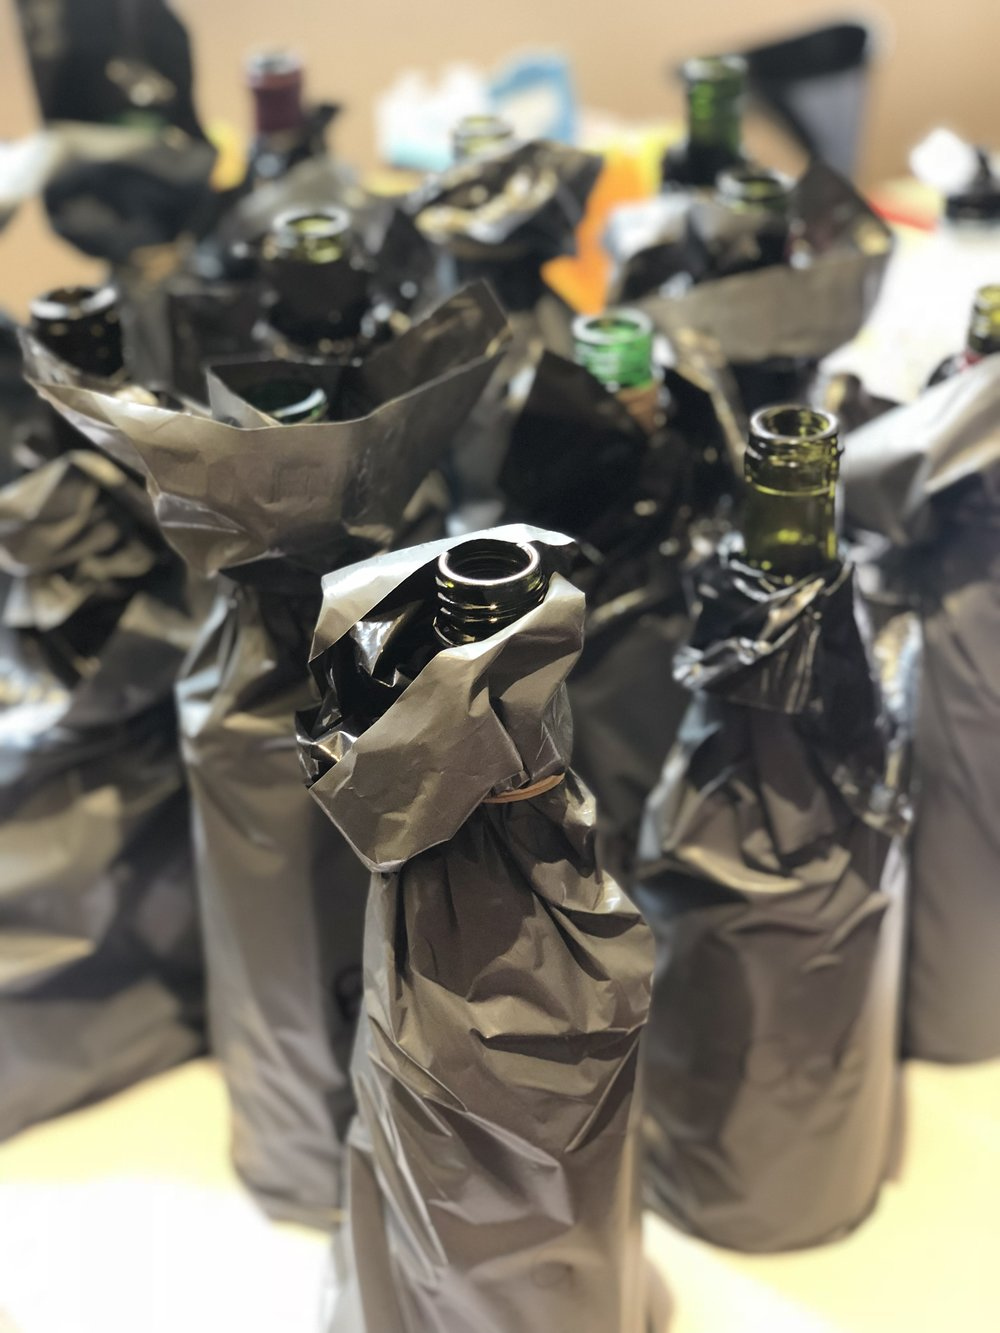 Blind Tasting set up for People's Choice Wine Awards all crisp and covered in black (Image: Sumi Sarma)